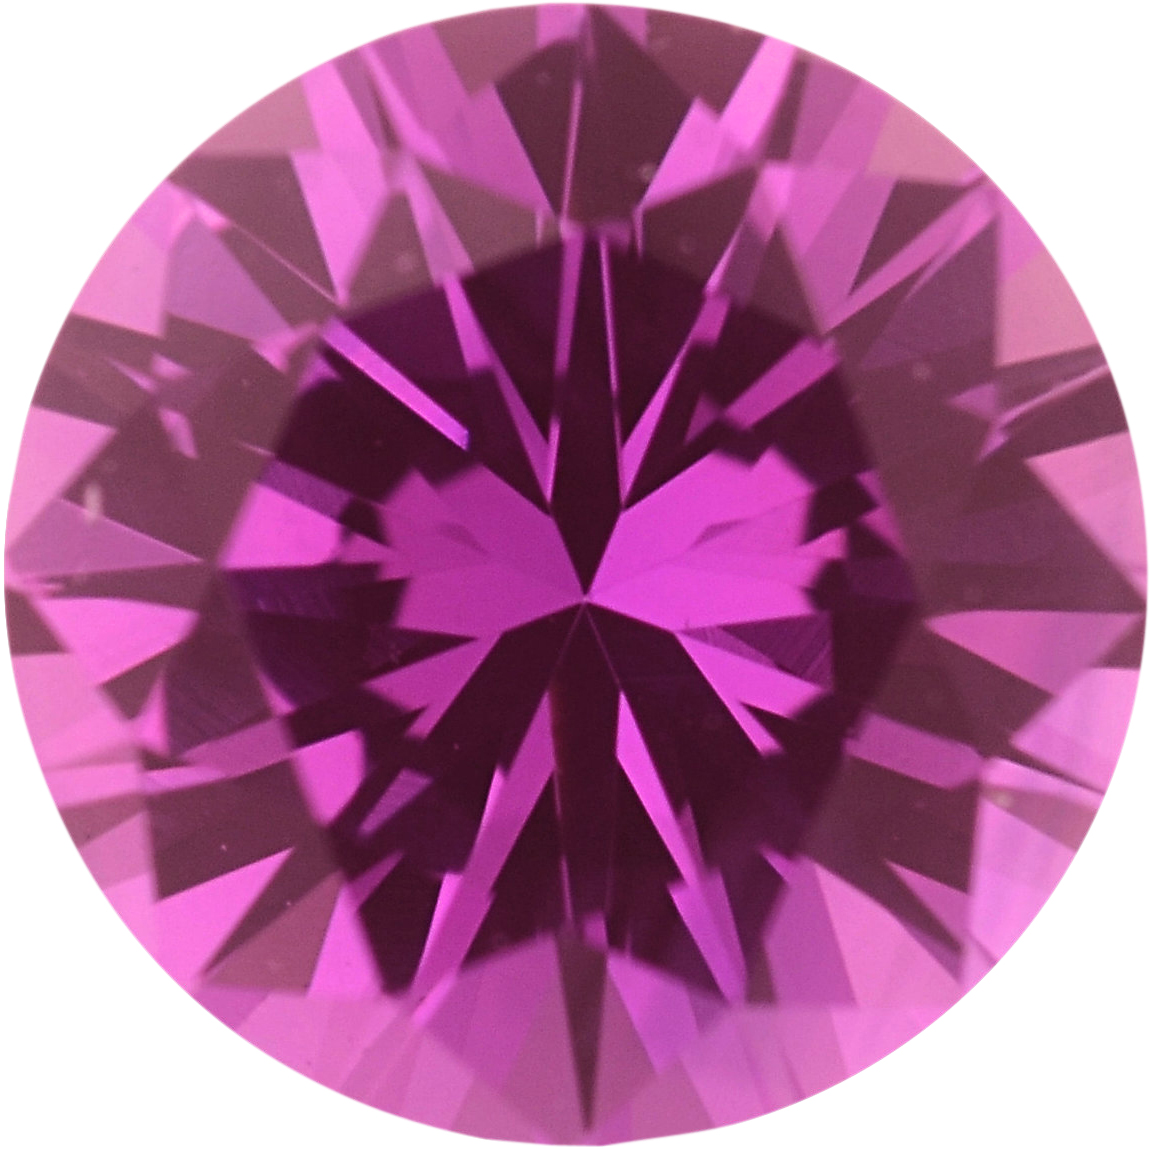 0.7 carats Pink Loose Sapphire Gemstone in Round Cut, 5.47 mm